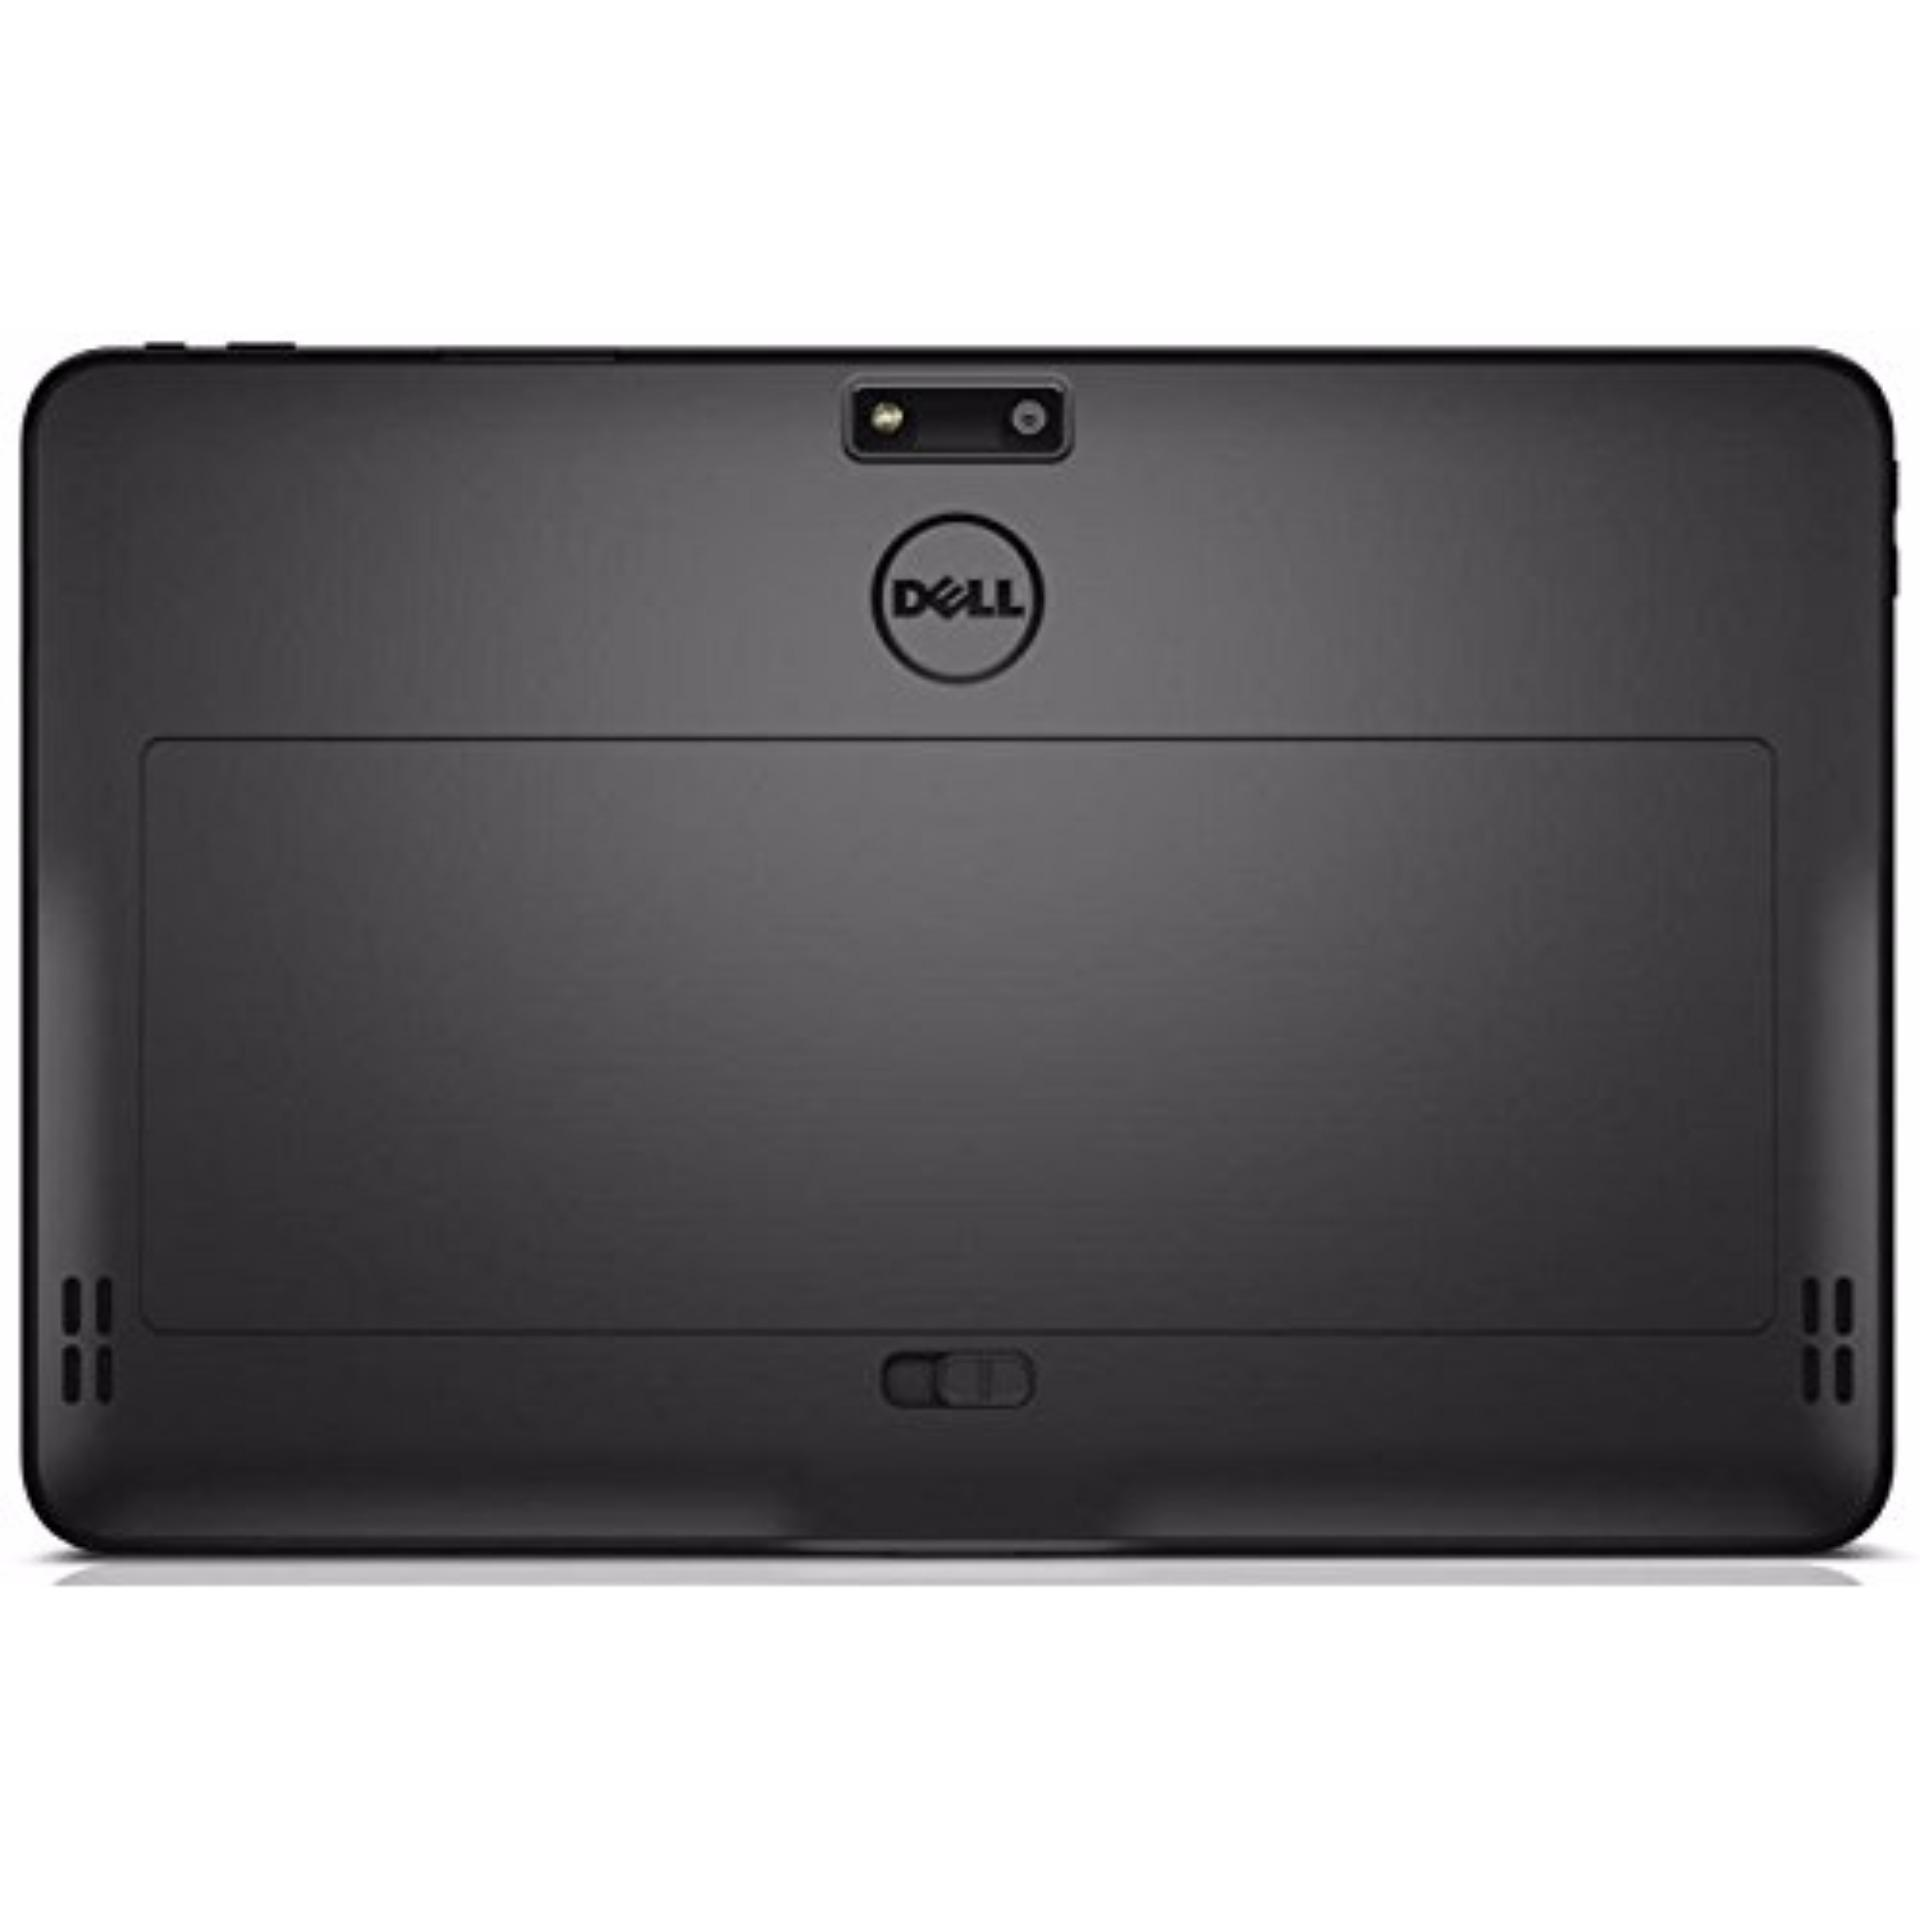 (Refurbished)Dell Latitude 10 Tablet Intel Atom-Z2760 (1.8GHz), 2GB/32GB Solid State Drive, 10.1